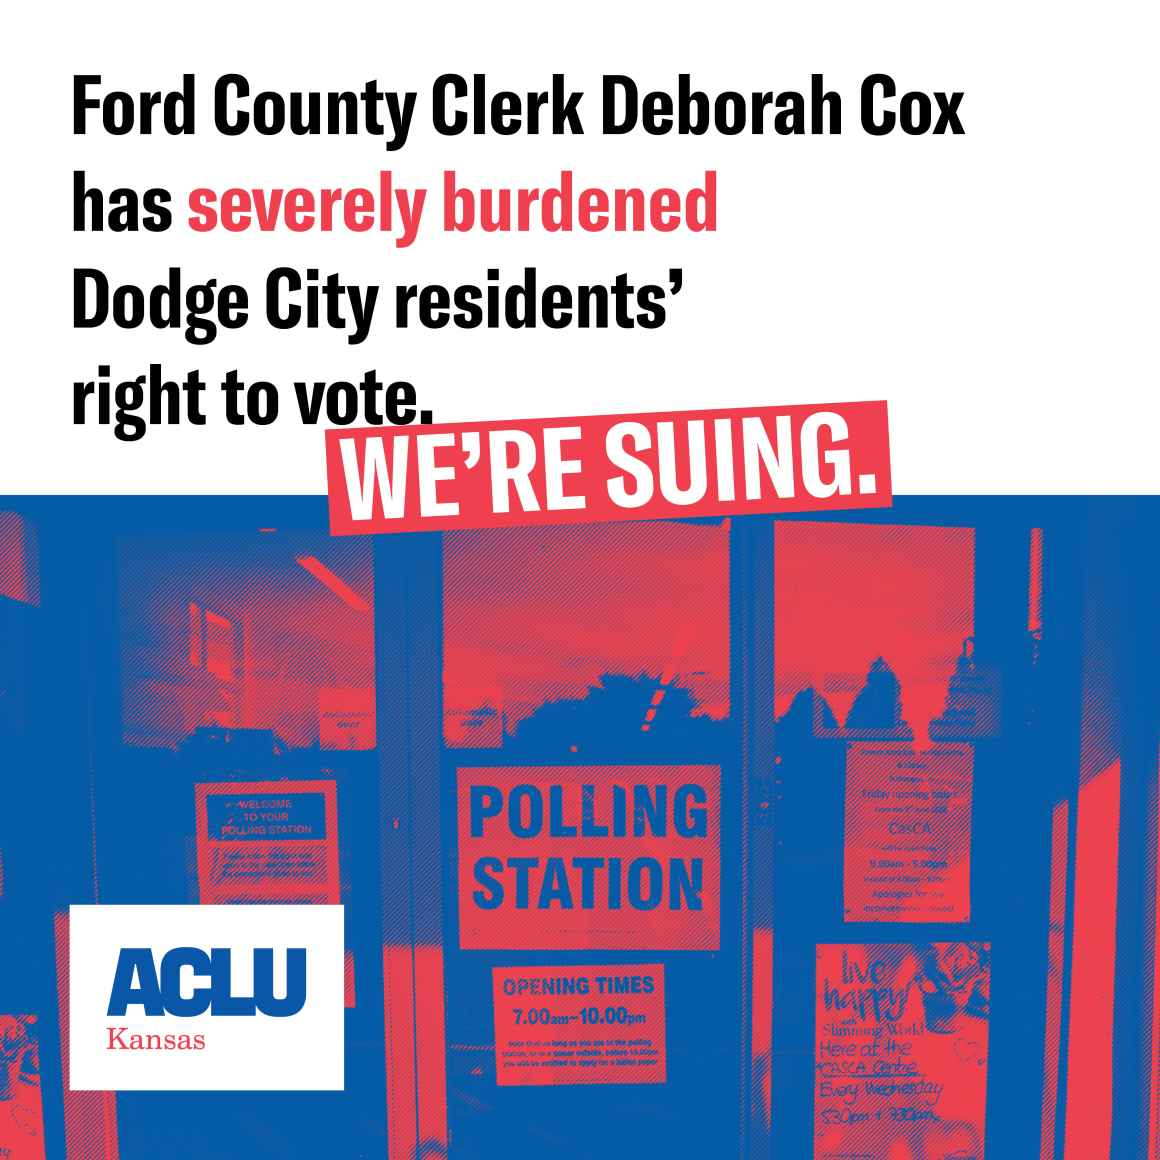 Ford County Clerk Deborah Cox has severely burdened Dodge City residents' right to vote. We're suing.